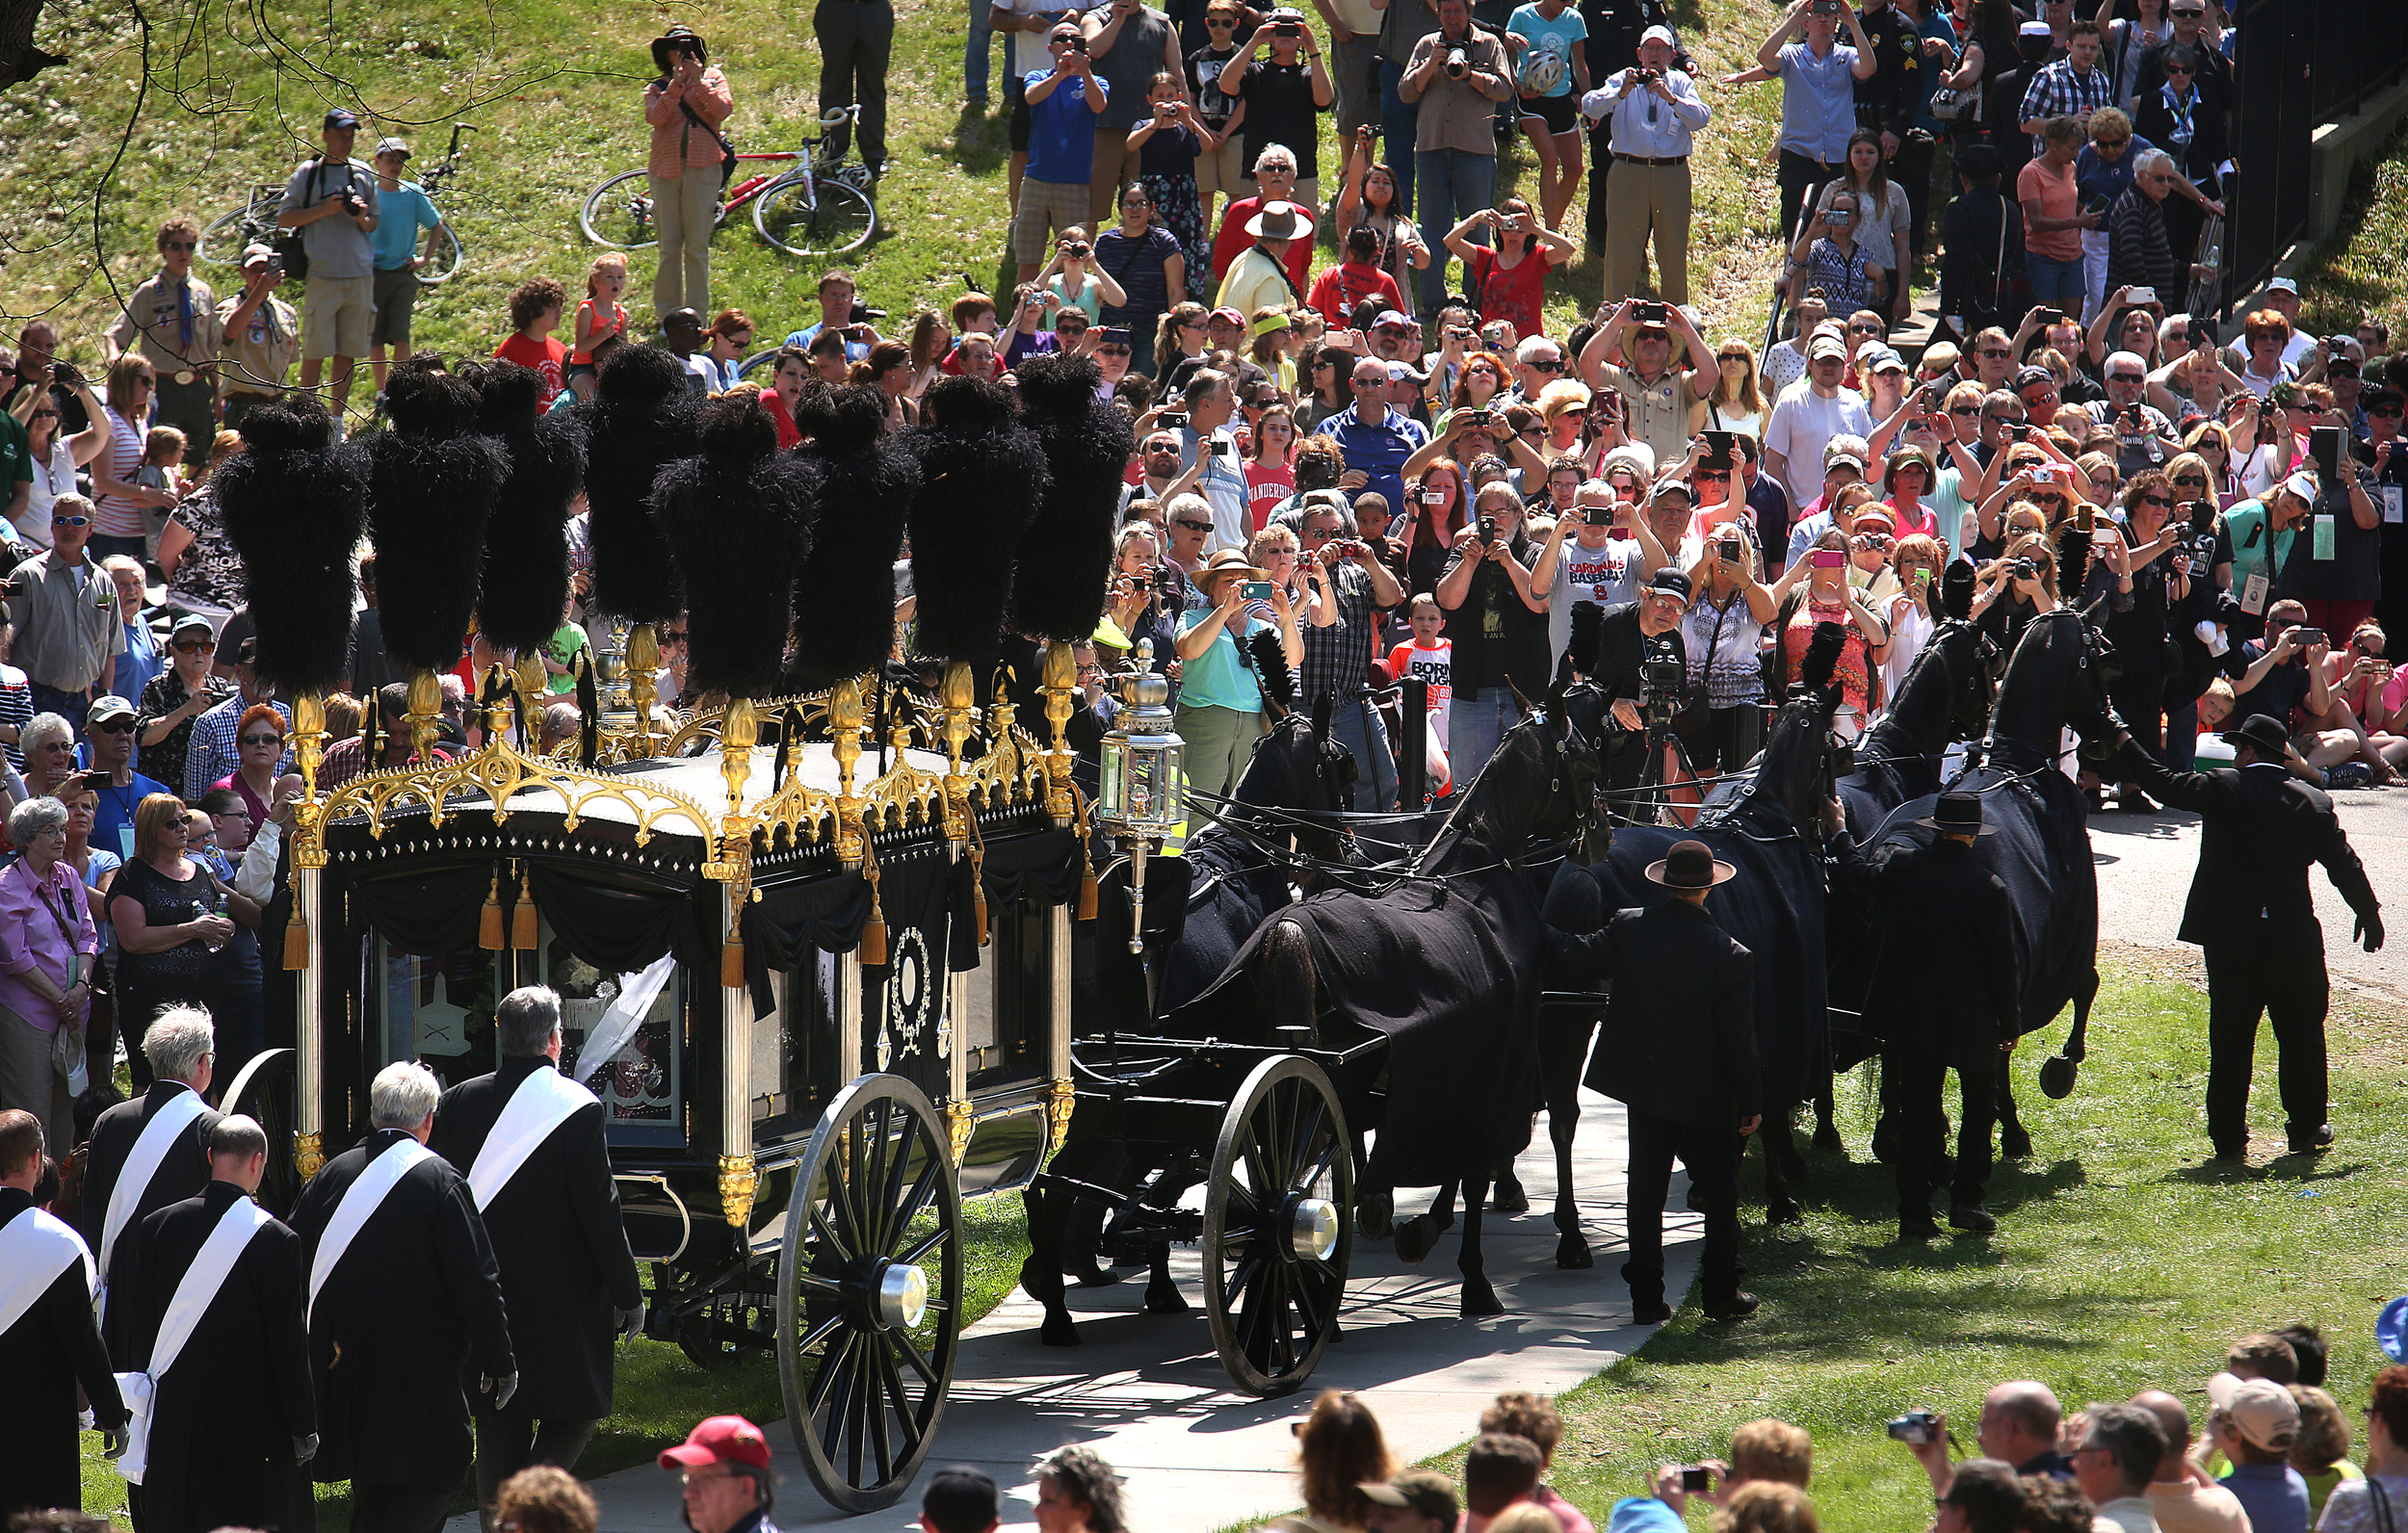 A large crowdof spectators watches as the hearse approaches the receiving vault in Oak Ridge Cemetery Sunday. David Spencer/The State Journal-Register